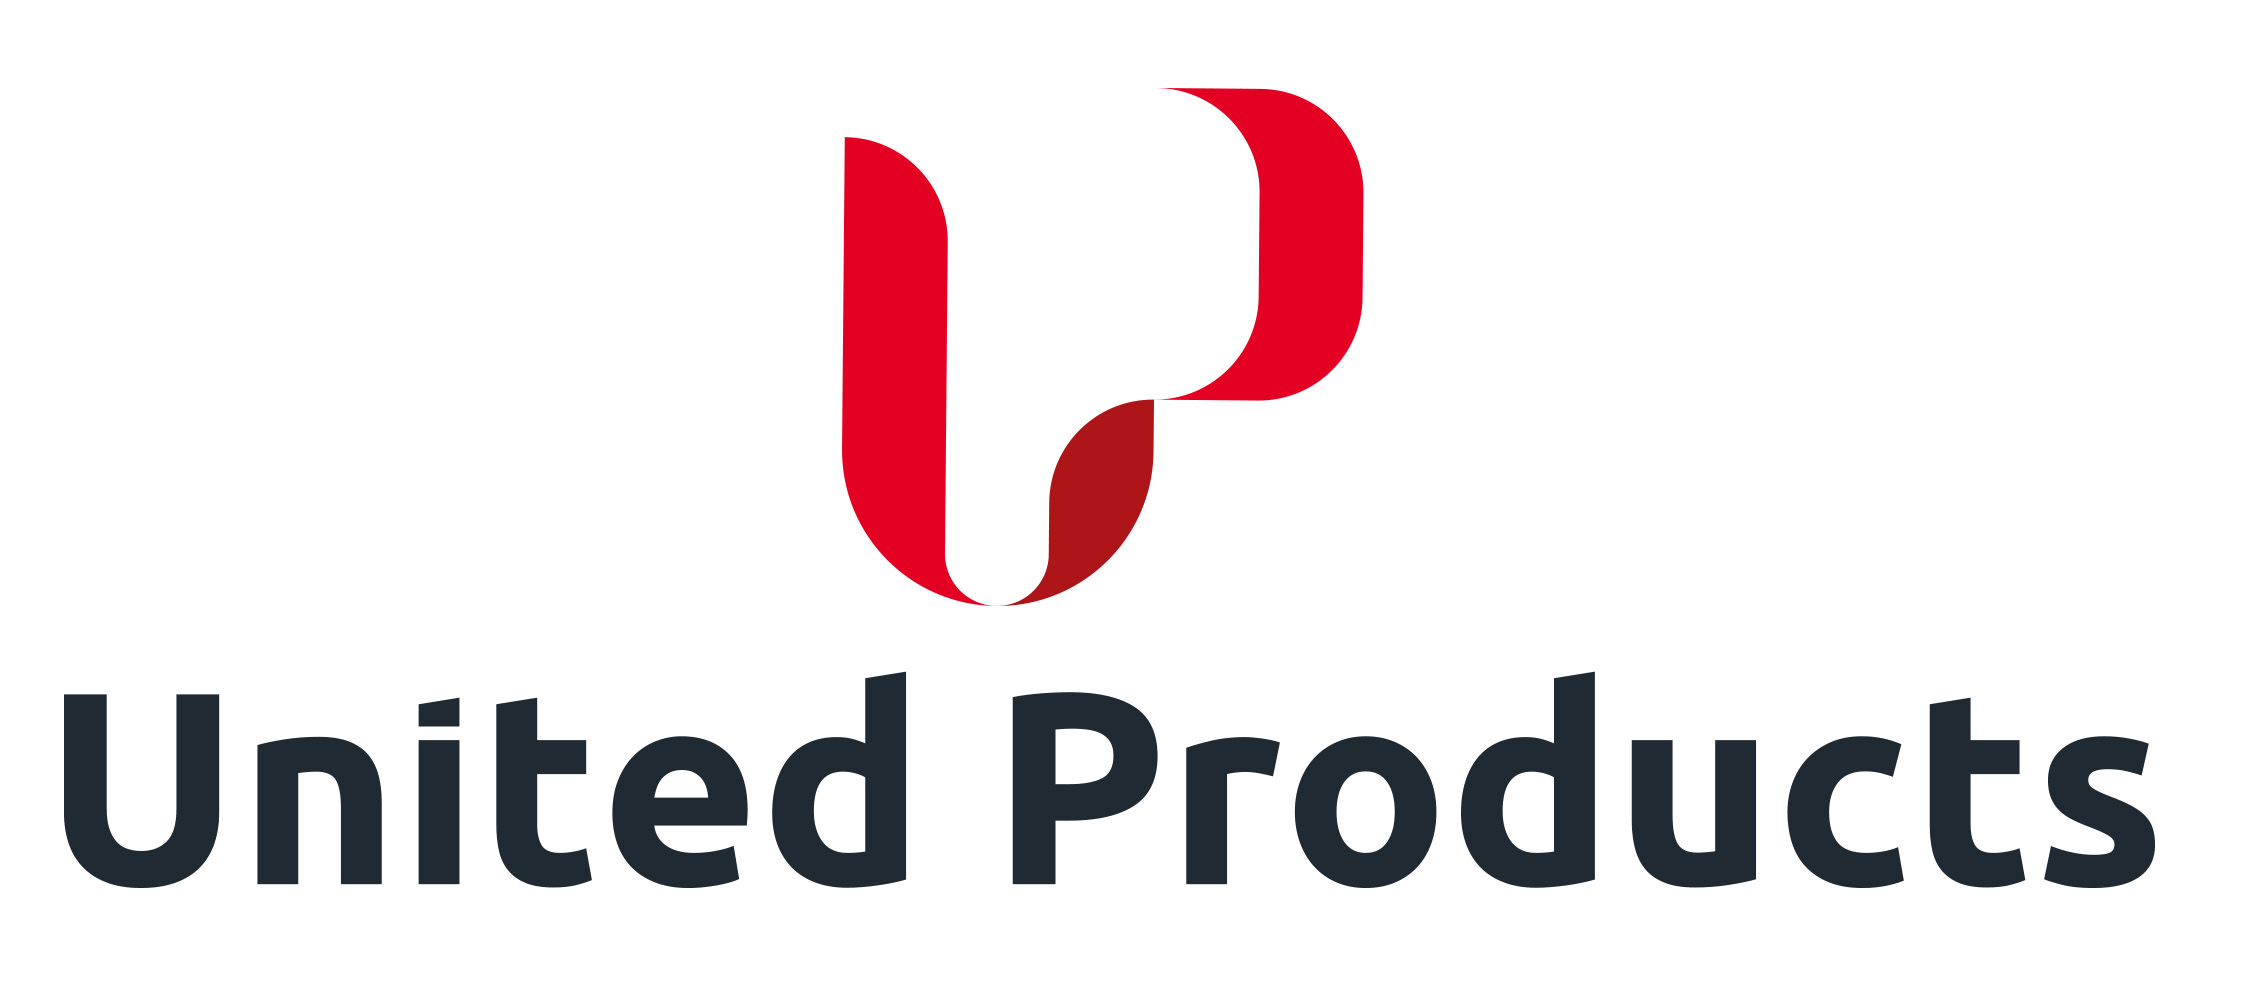 United Products